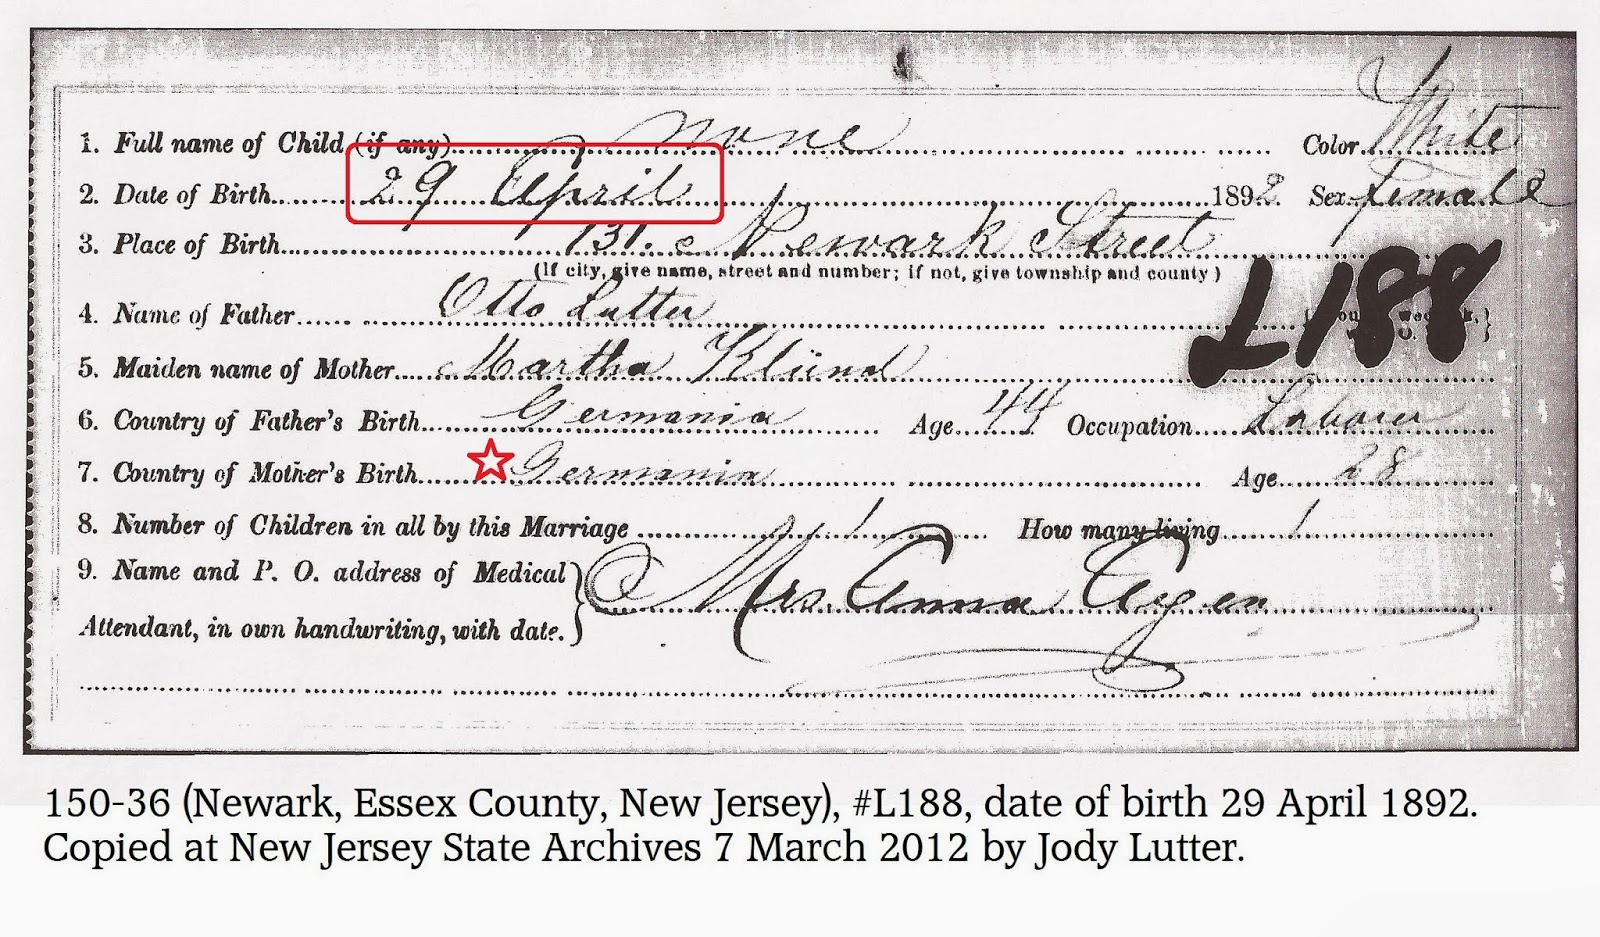 Lost birth certificate nj best design sertificate 2017 hawaii birth certificate 1963 snarkybytes xflitez Choice Image